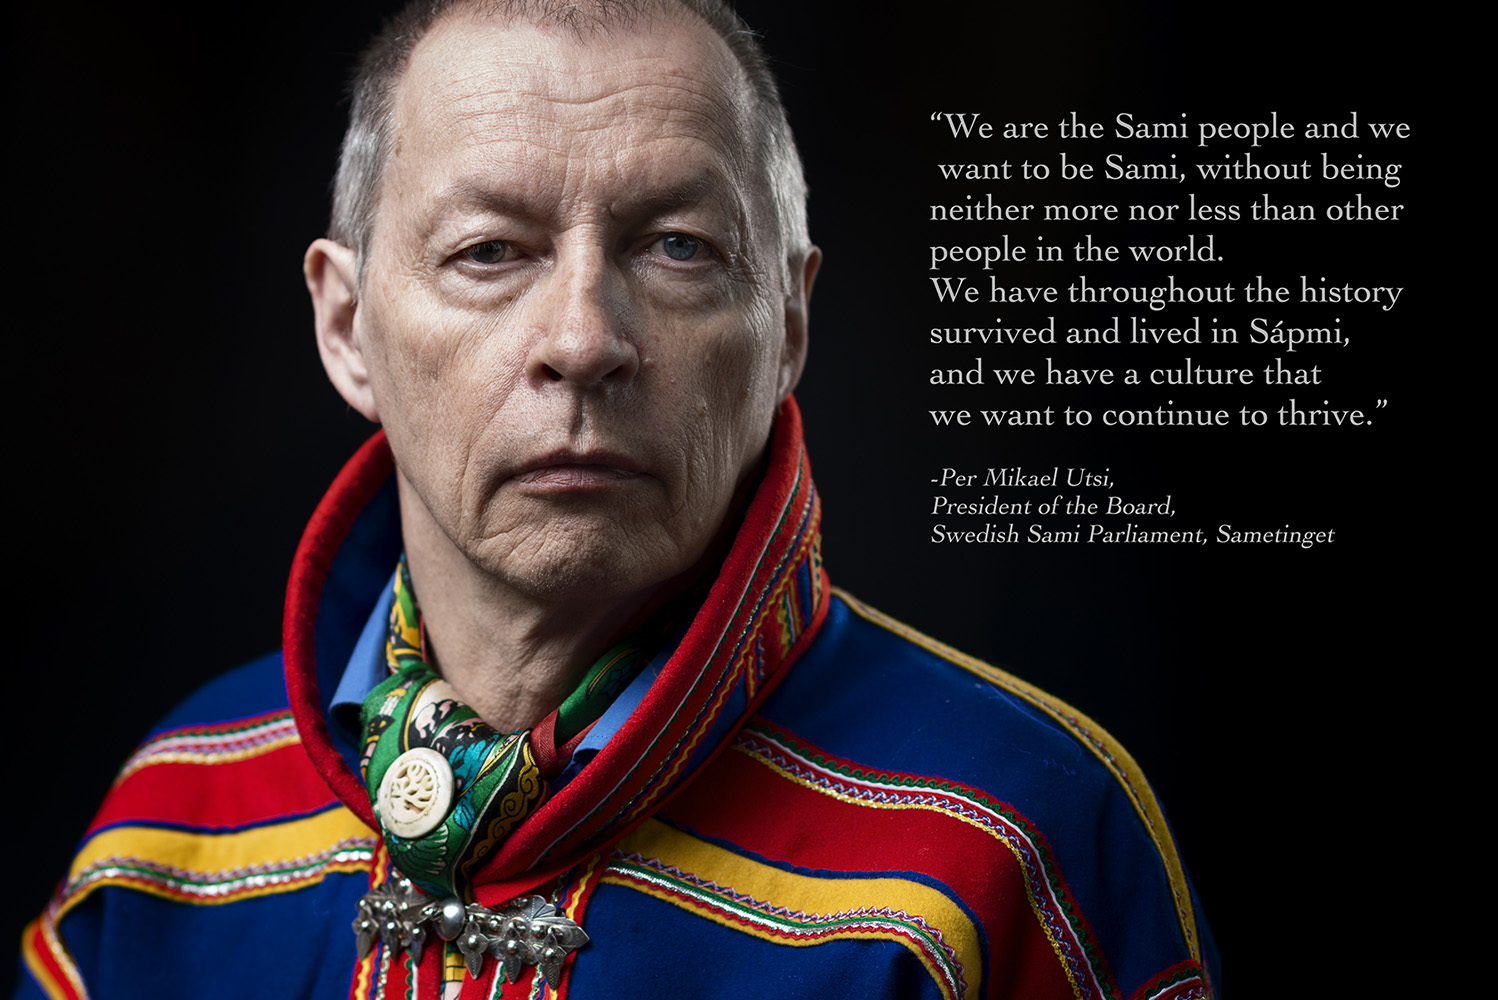 "Per Mikael Utsi, President of the Board, Swedish Sami Parliament, Sametinget""We are the Sami people and we want to be Sami, without being neither more nor less than other people in the world. We have throughout the history survived and lived in Sápmi, and we have a culture that we want to continue to thrive."""